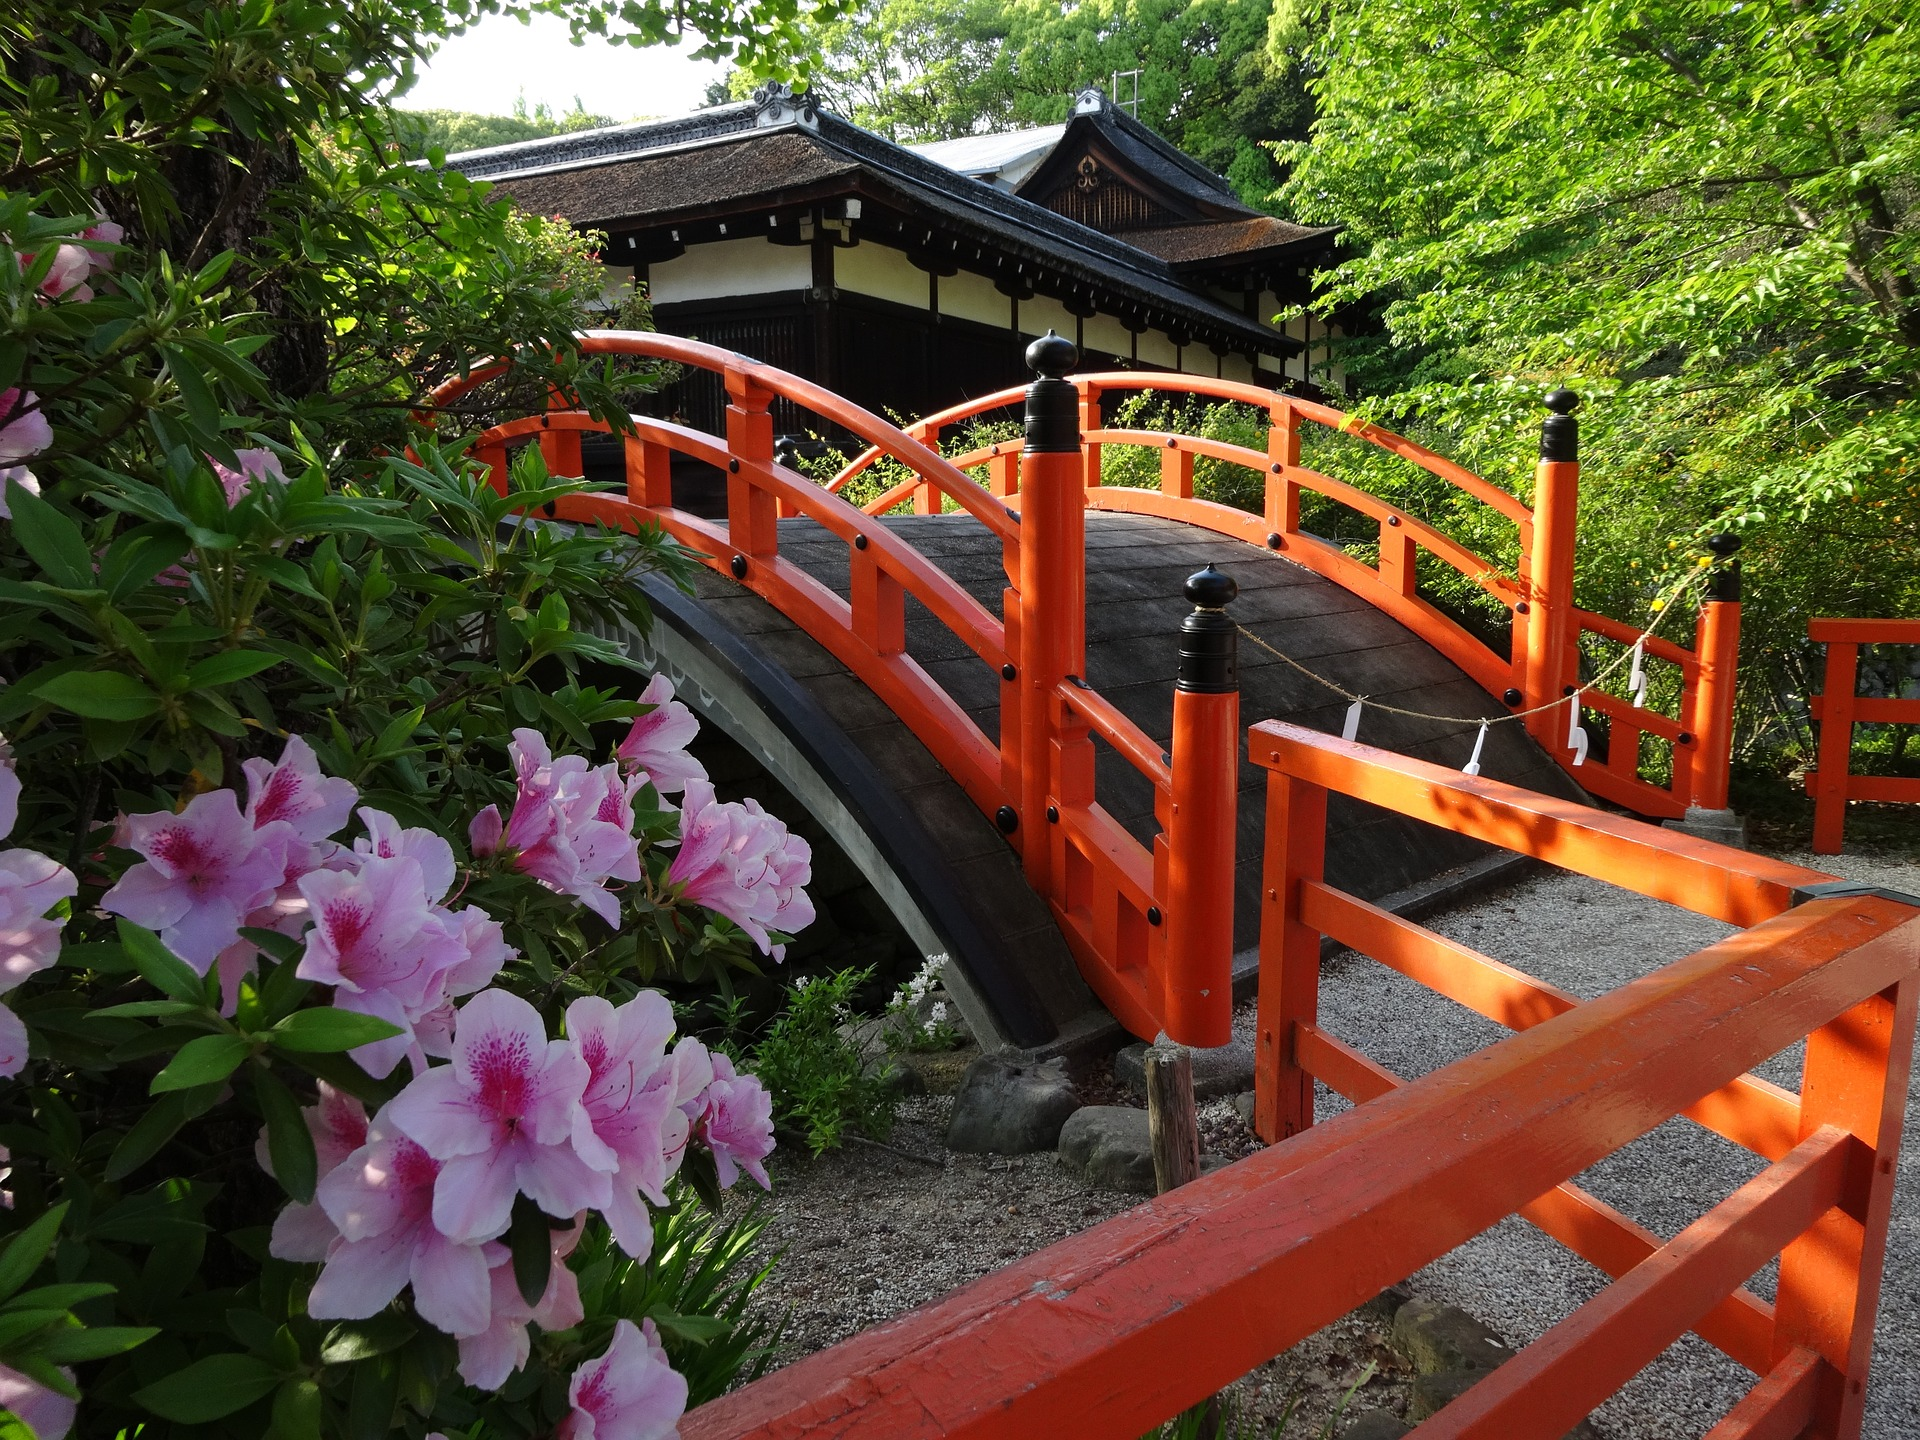 shimogamo-shrine-1098280_1920